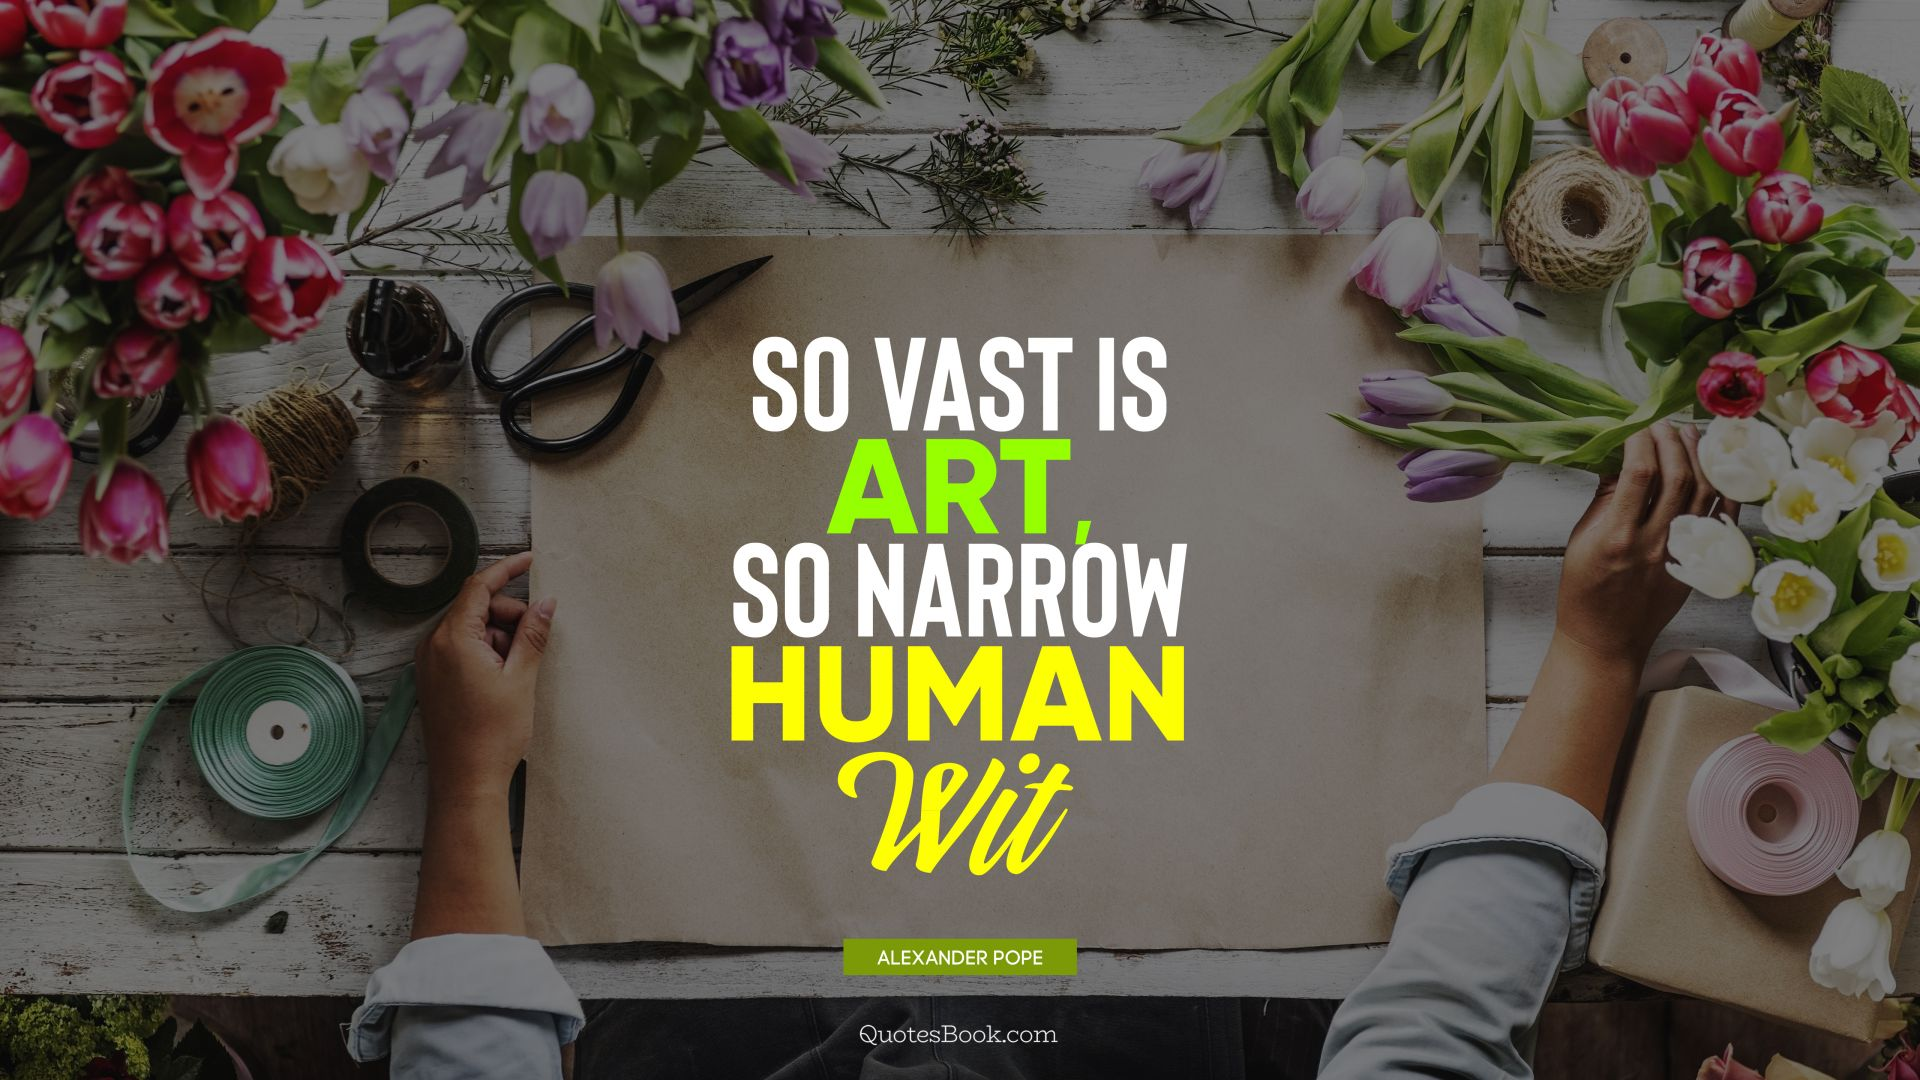 So vast is art, so narrow human wit. - Quote by Alexander Pope